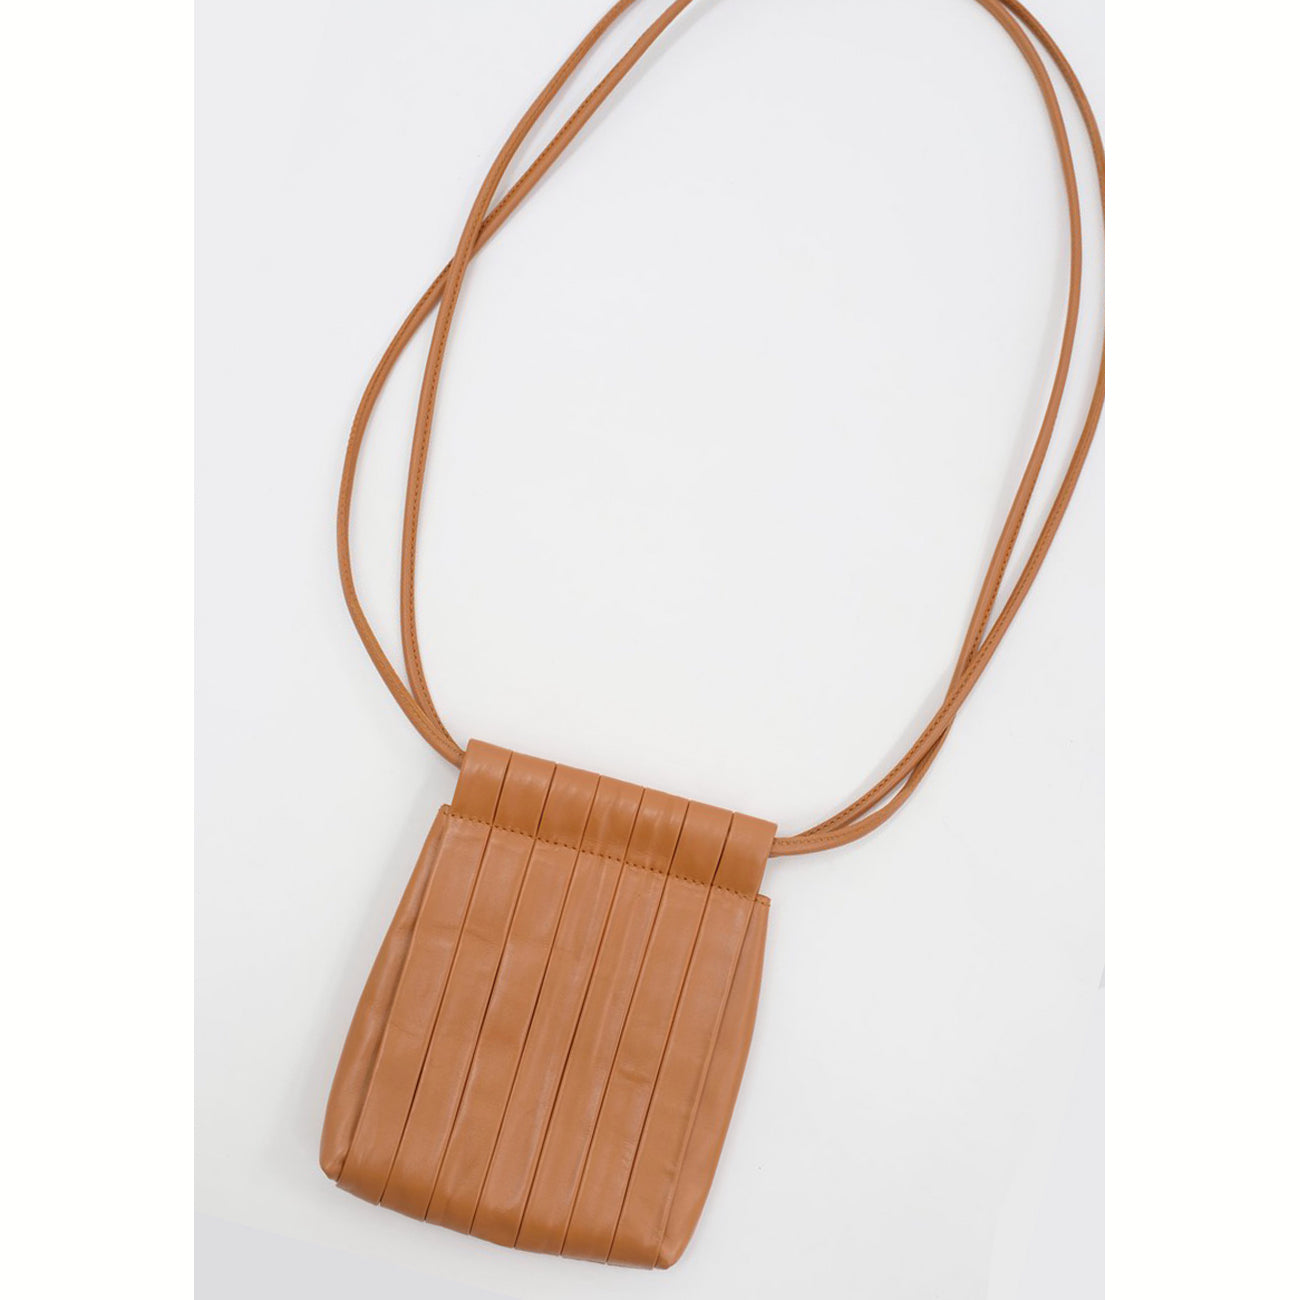 pleated bag in dry clay